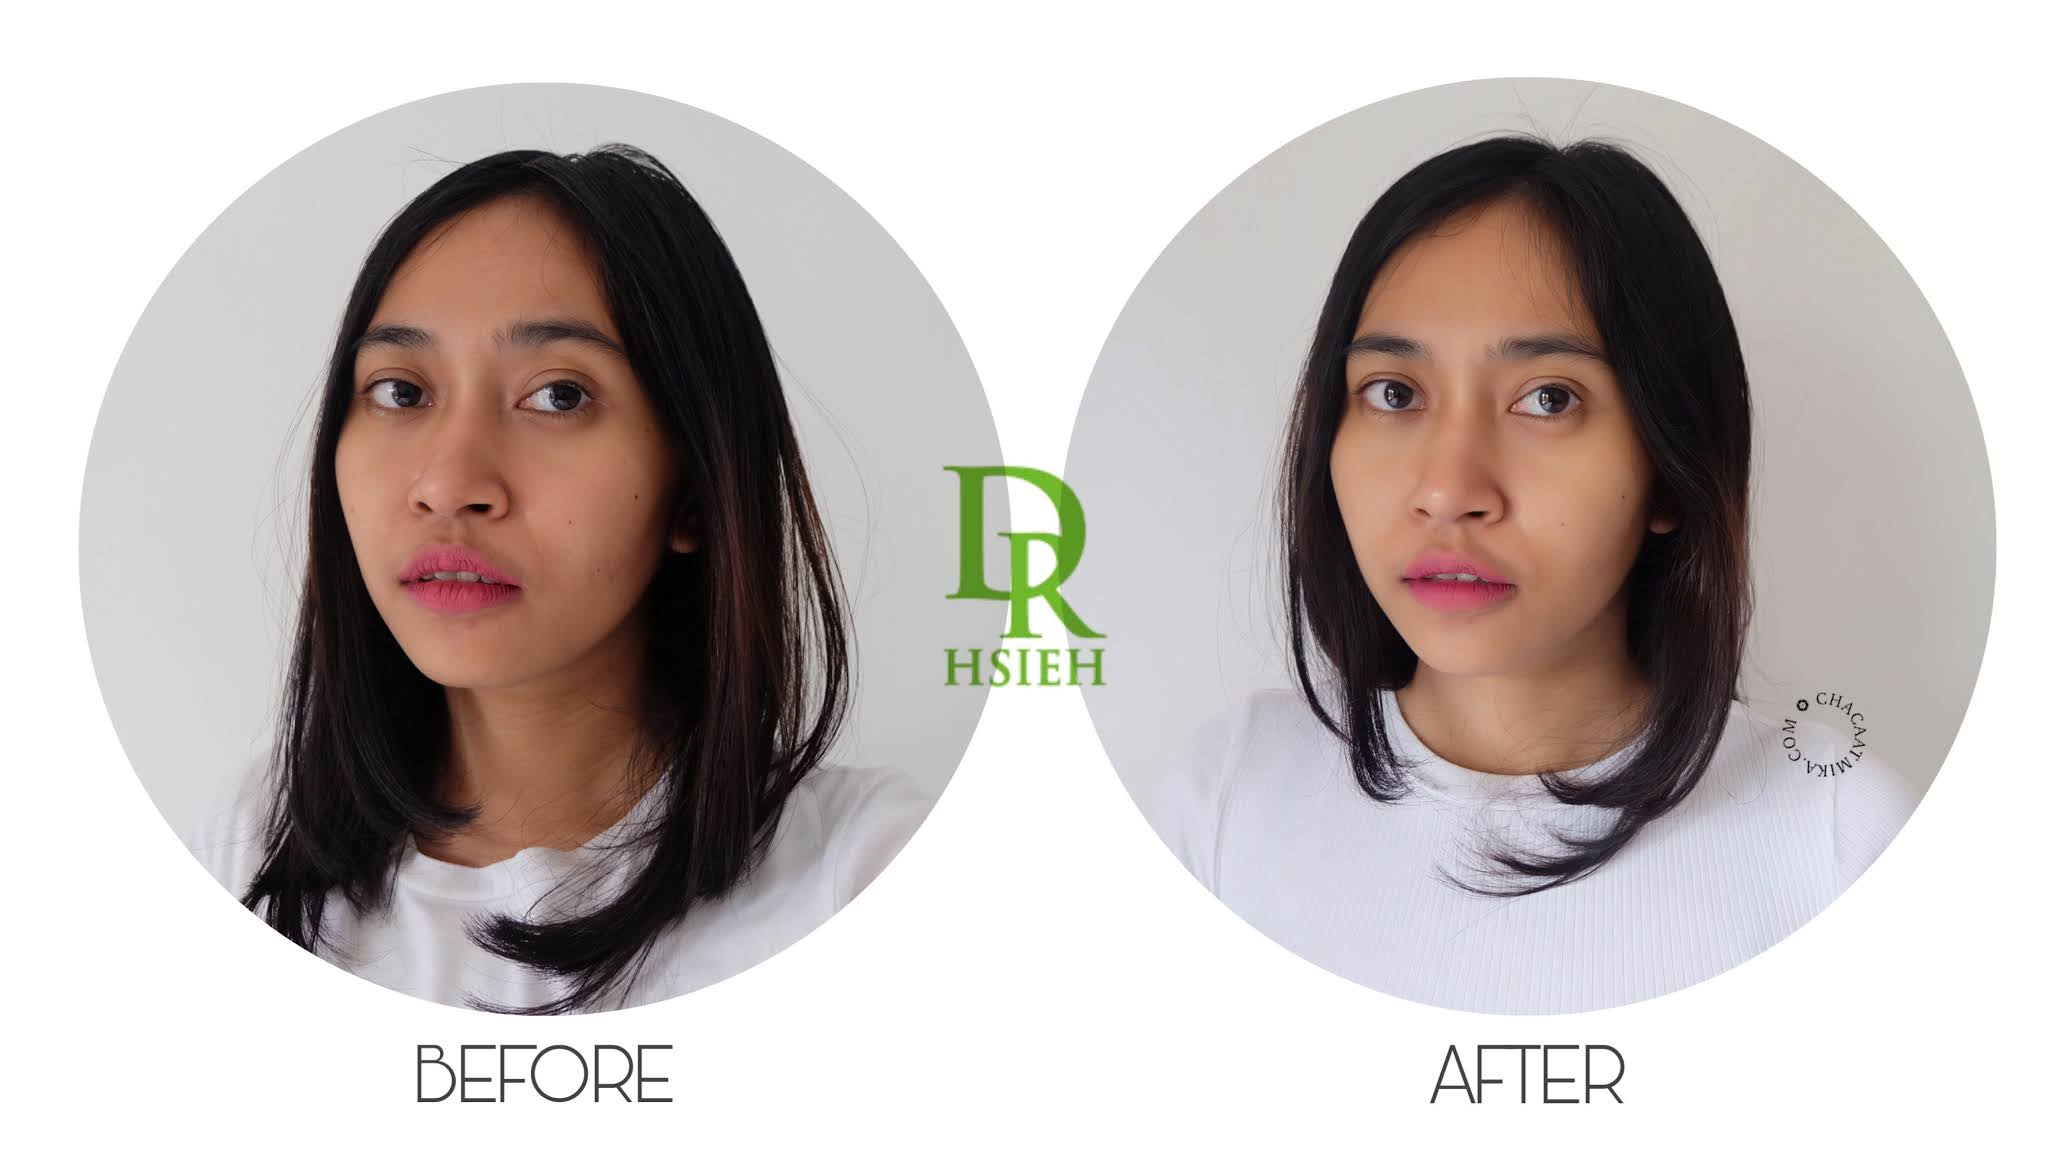 Before After Penggunaan Skin care Dr. Hsieh